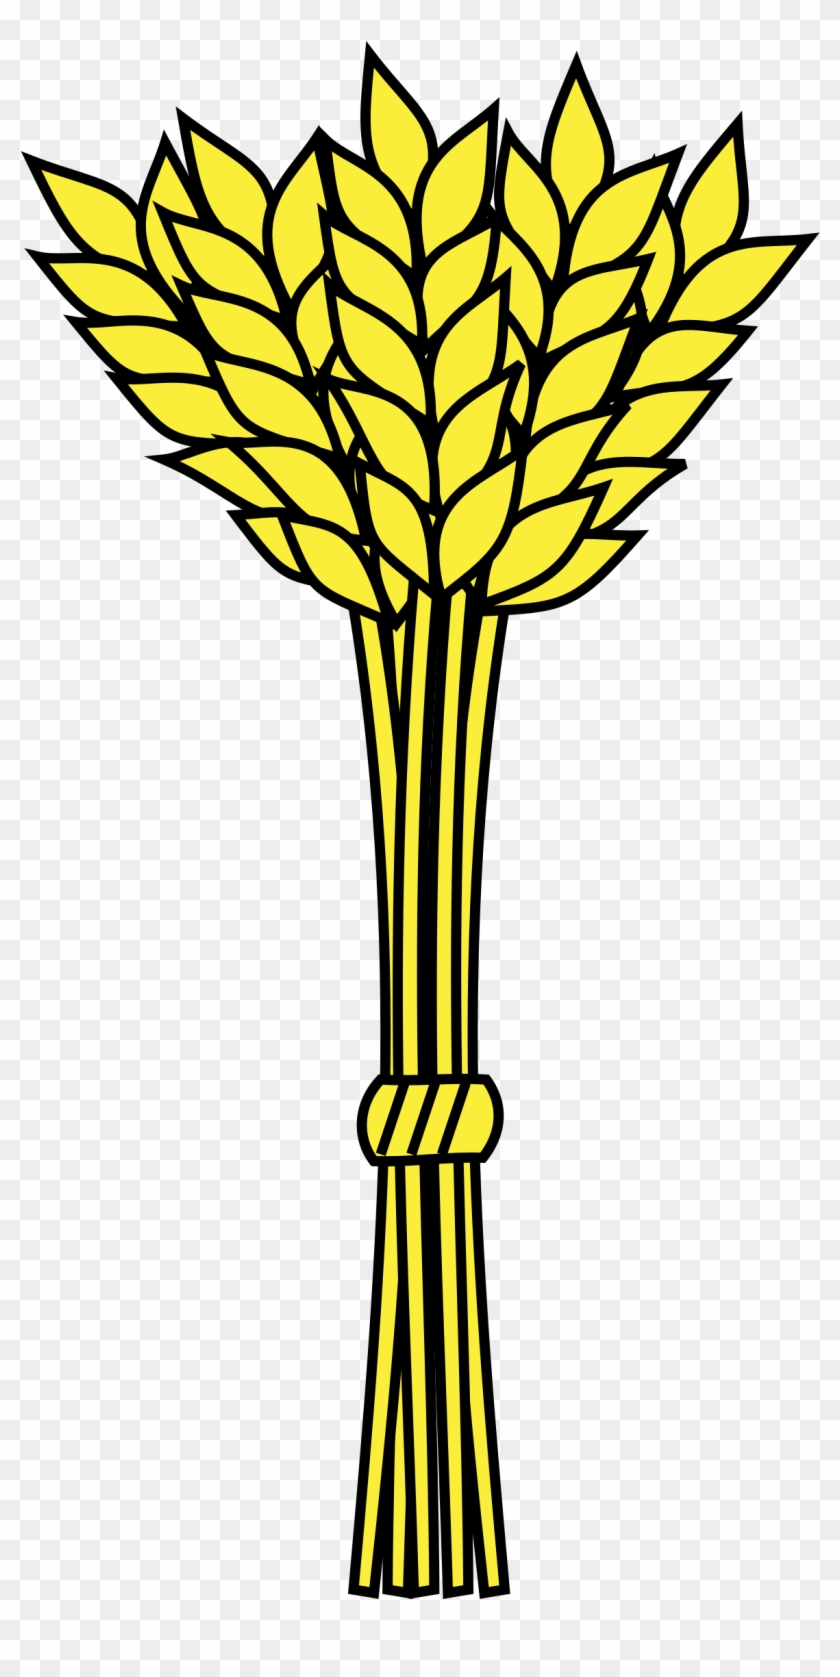 Wheat clipart wheat stalk. Grain bundle of hd